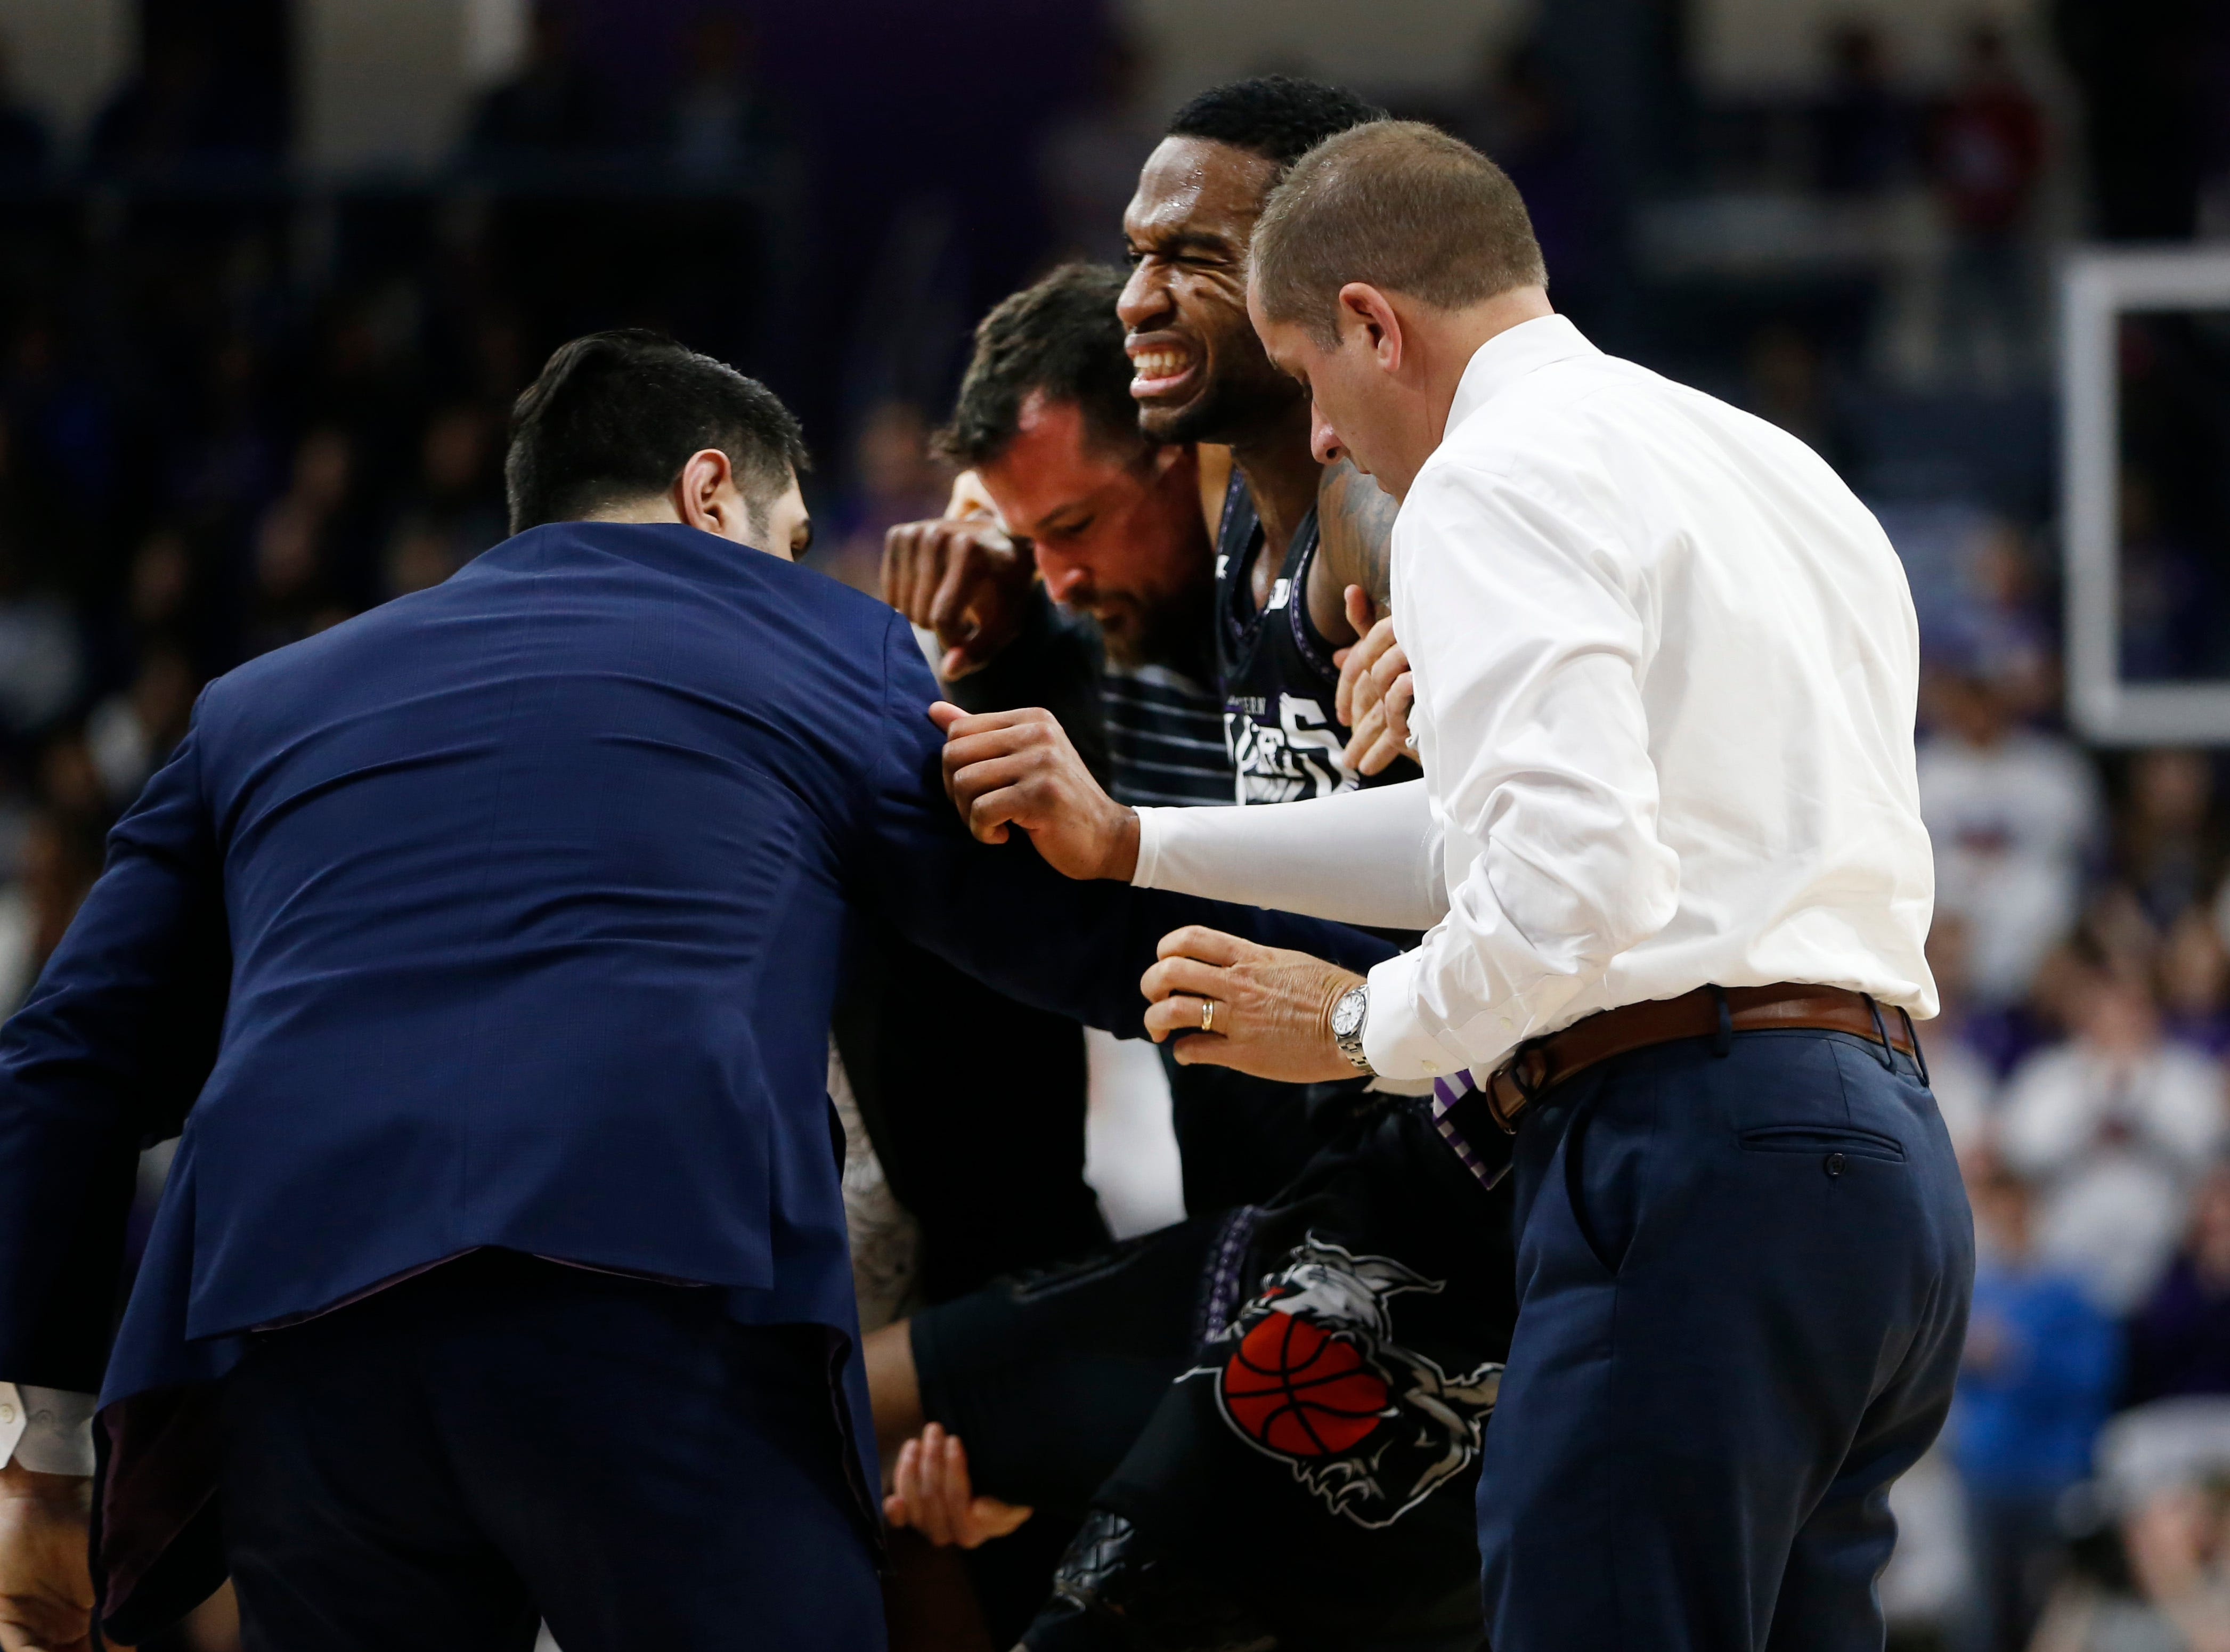 Mar 9, 2019; Evanston, IL, USA; Northwestern Wildcats forward Vic Law is helped off the floor after his injury during the second half against the Purdue Boilermakers at Welsh-Ryan Arena. Mandatory Credit: Nuccio DiNuzzo-USA TODAY Sports